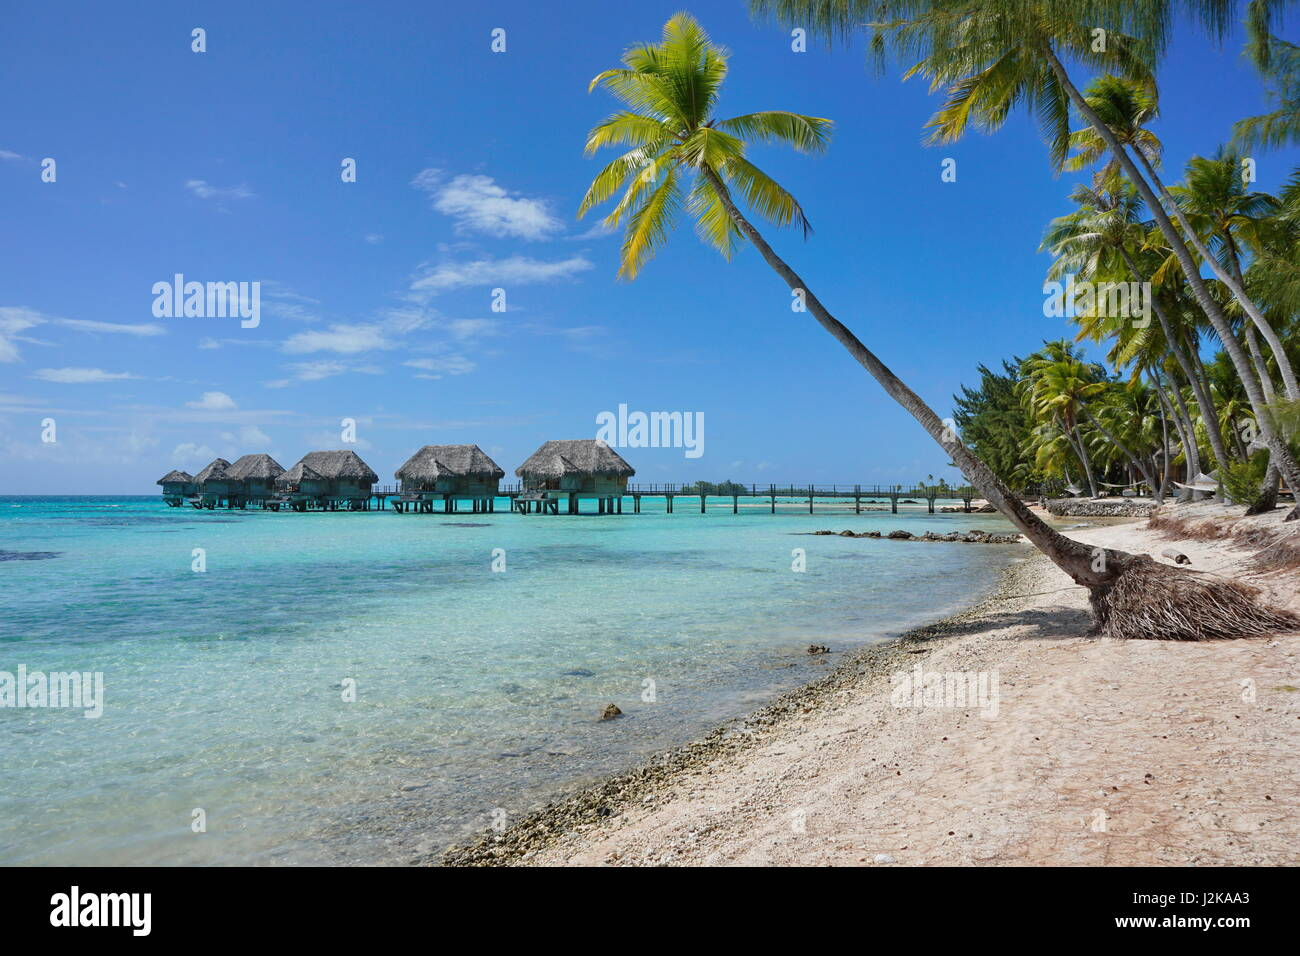 Tropical resort overwater bungalows in the lagoon and seashore with coconut palm trees, Tikehau atoll, Tuamotu, - Stock Image